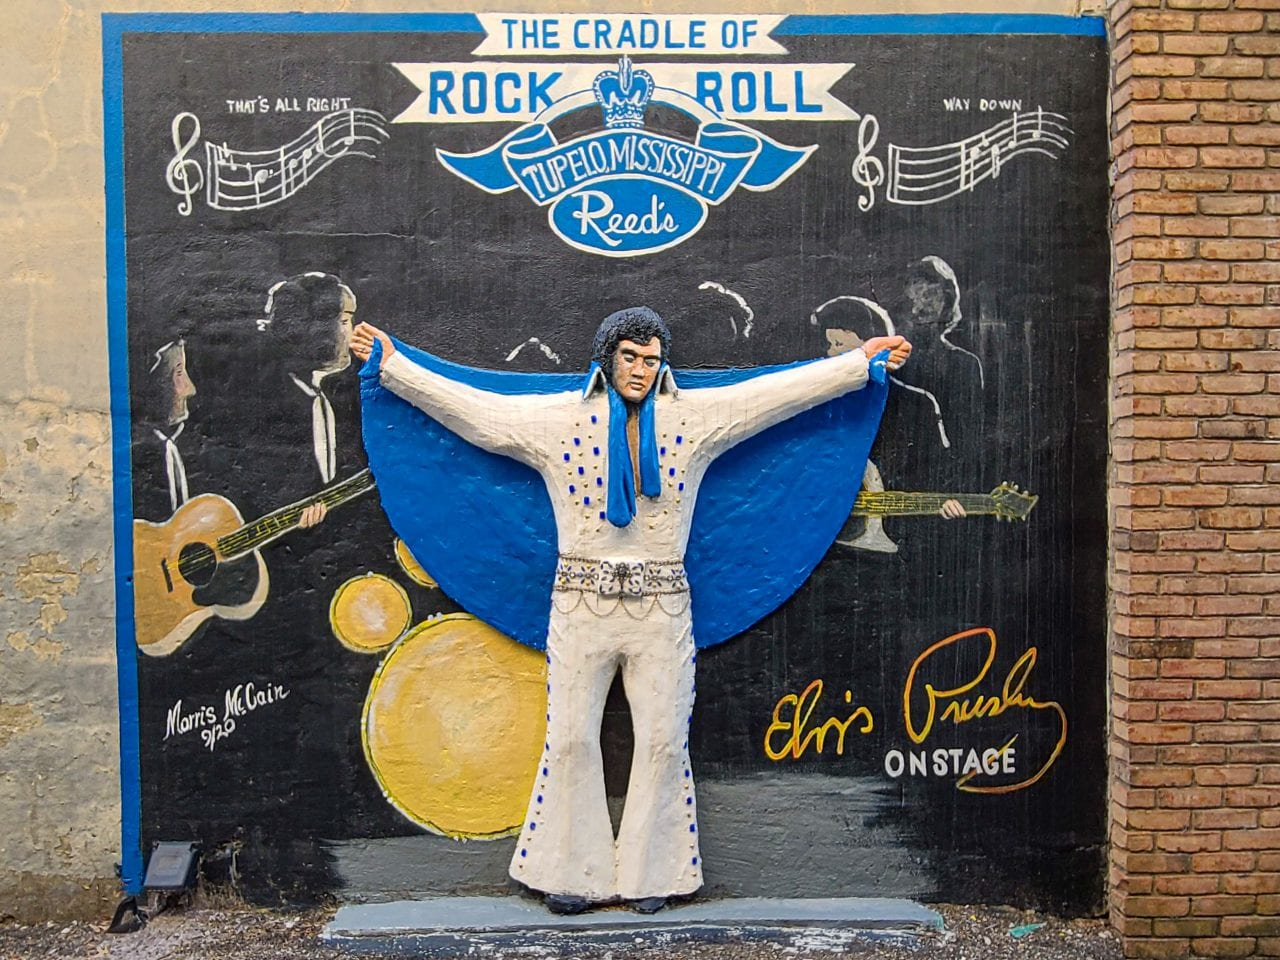 Cradle of Rock and Roll mural at Reeds